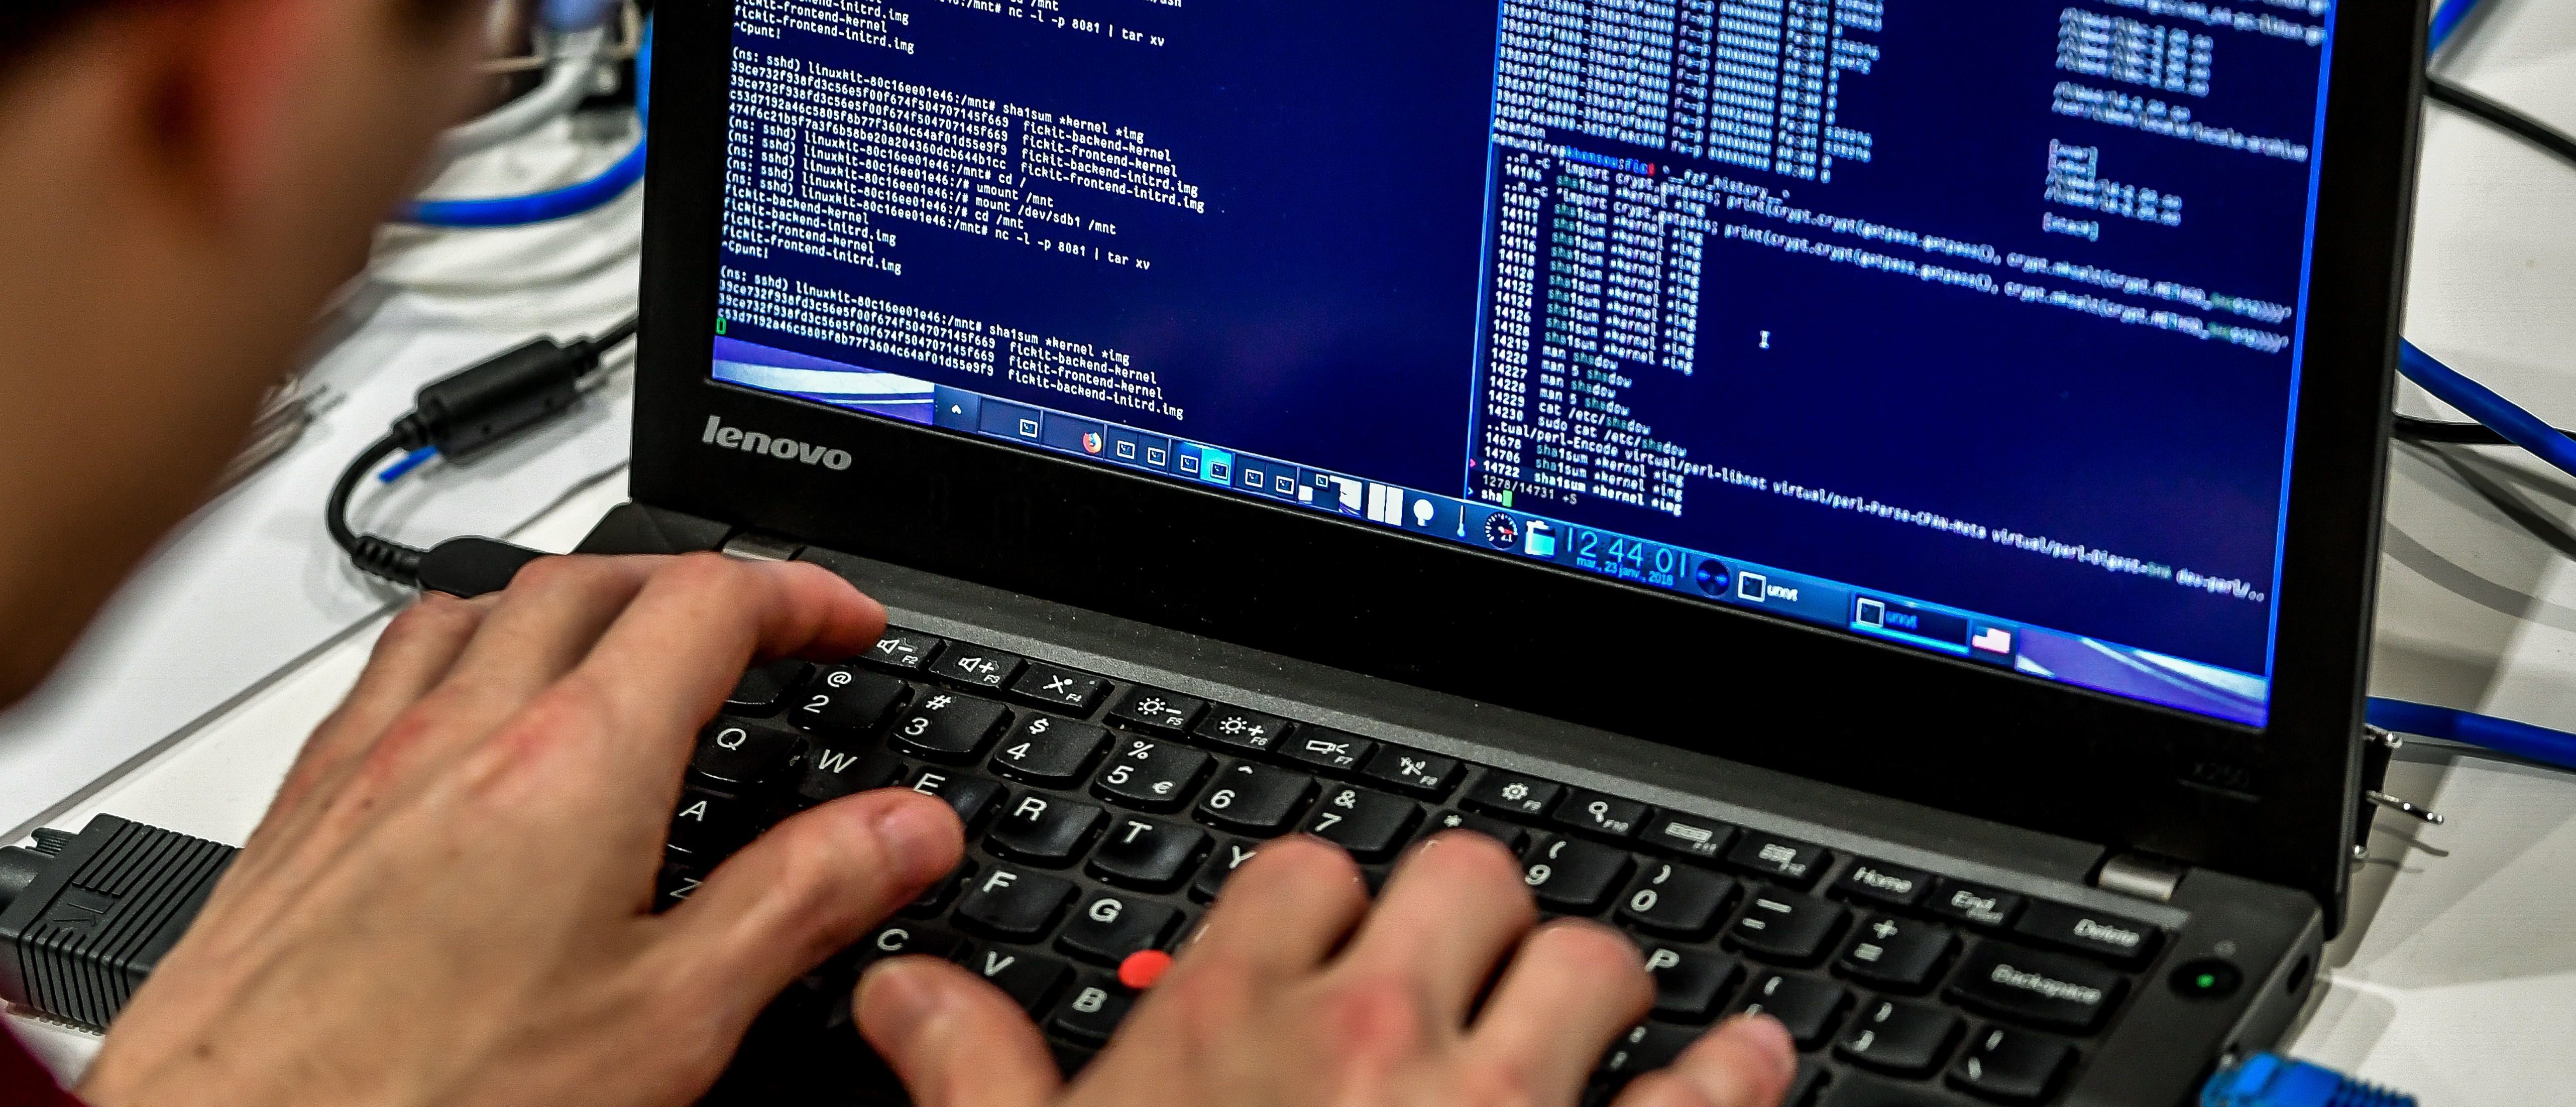 A person works at a computer during the 10th International Cybersecurity Forum/ PHILIPPE HUGUEN/AFP/Getty Images